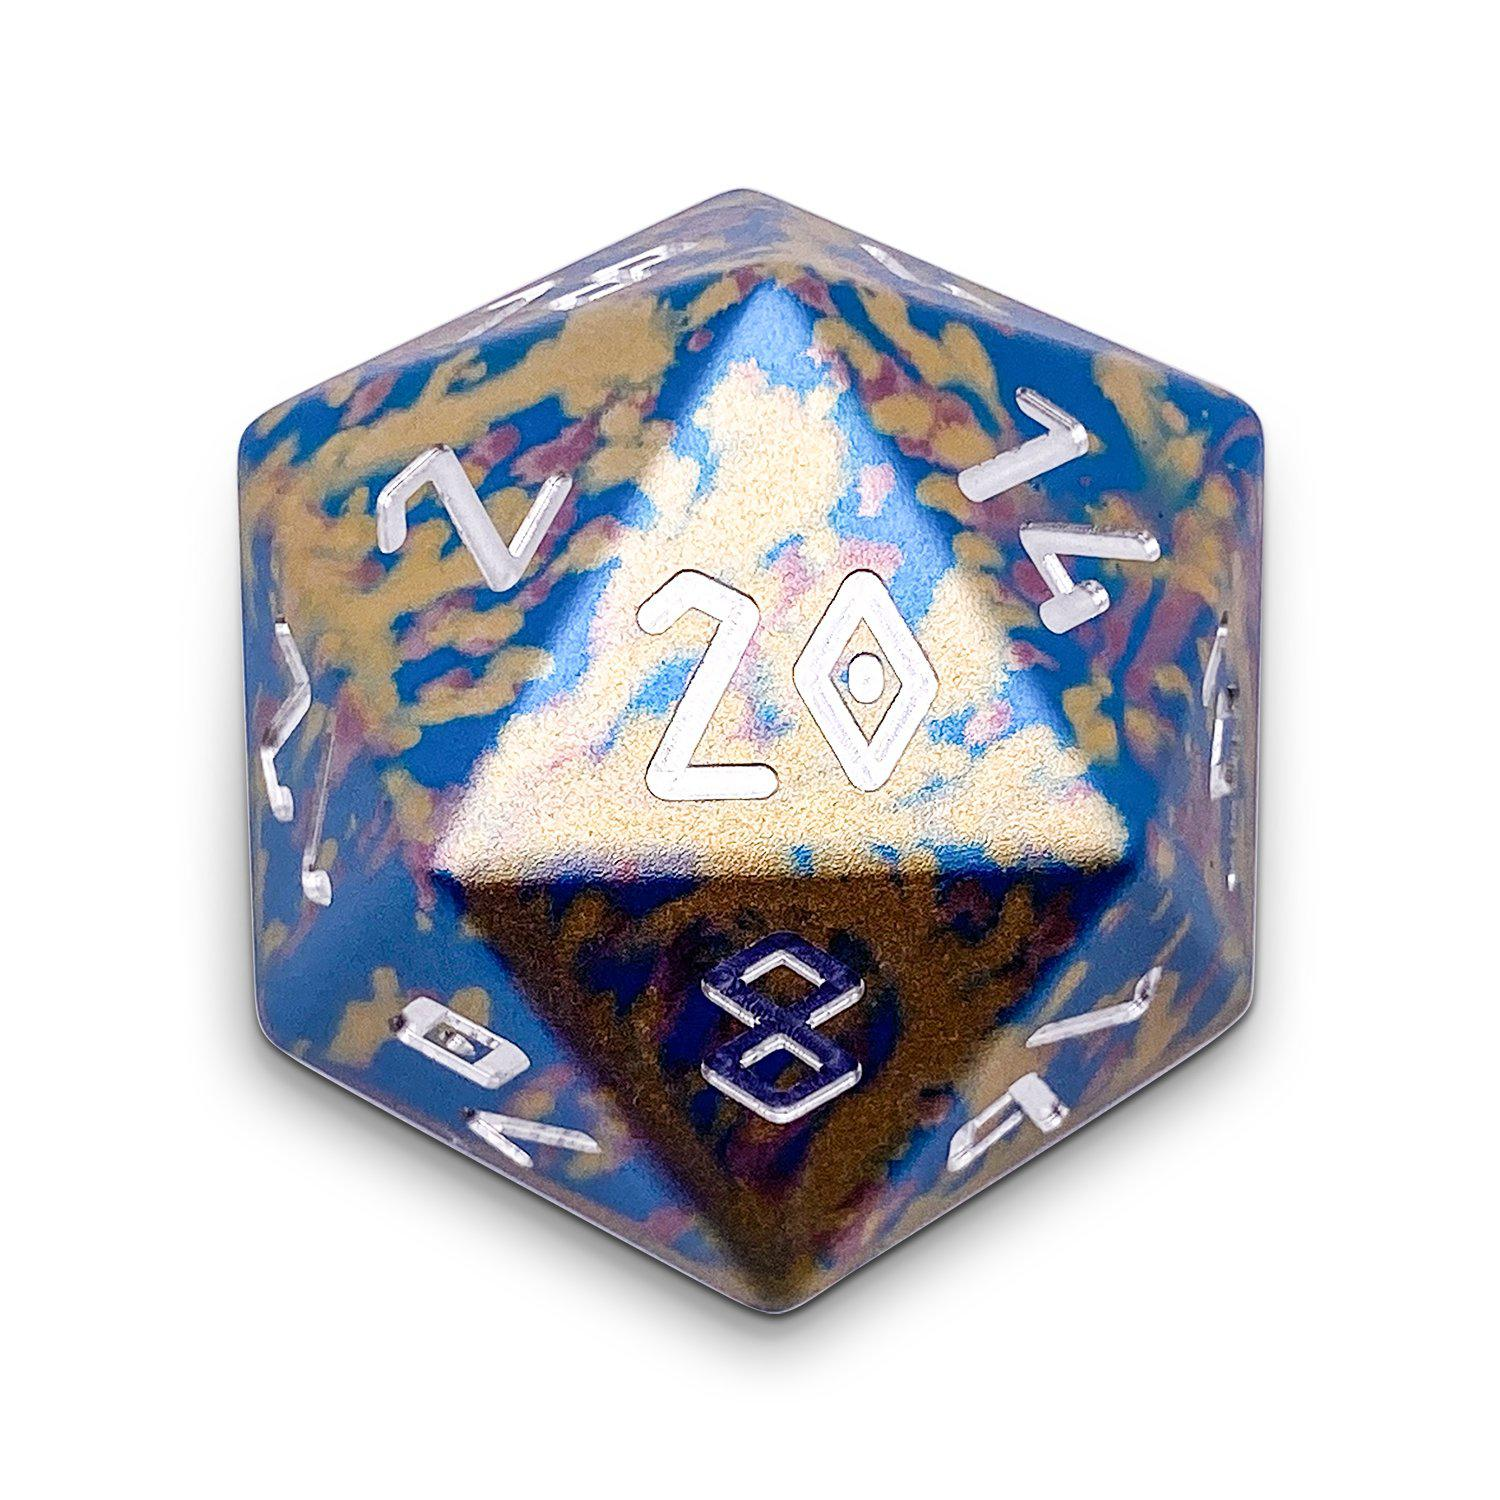 Cotton Candy - Single D20 Wondrous 20mm 6063 Aircraft Grade Aluminum Metal Die